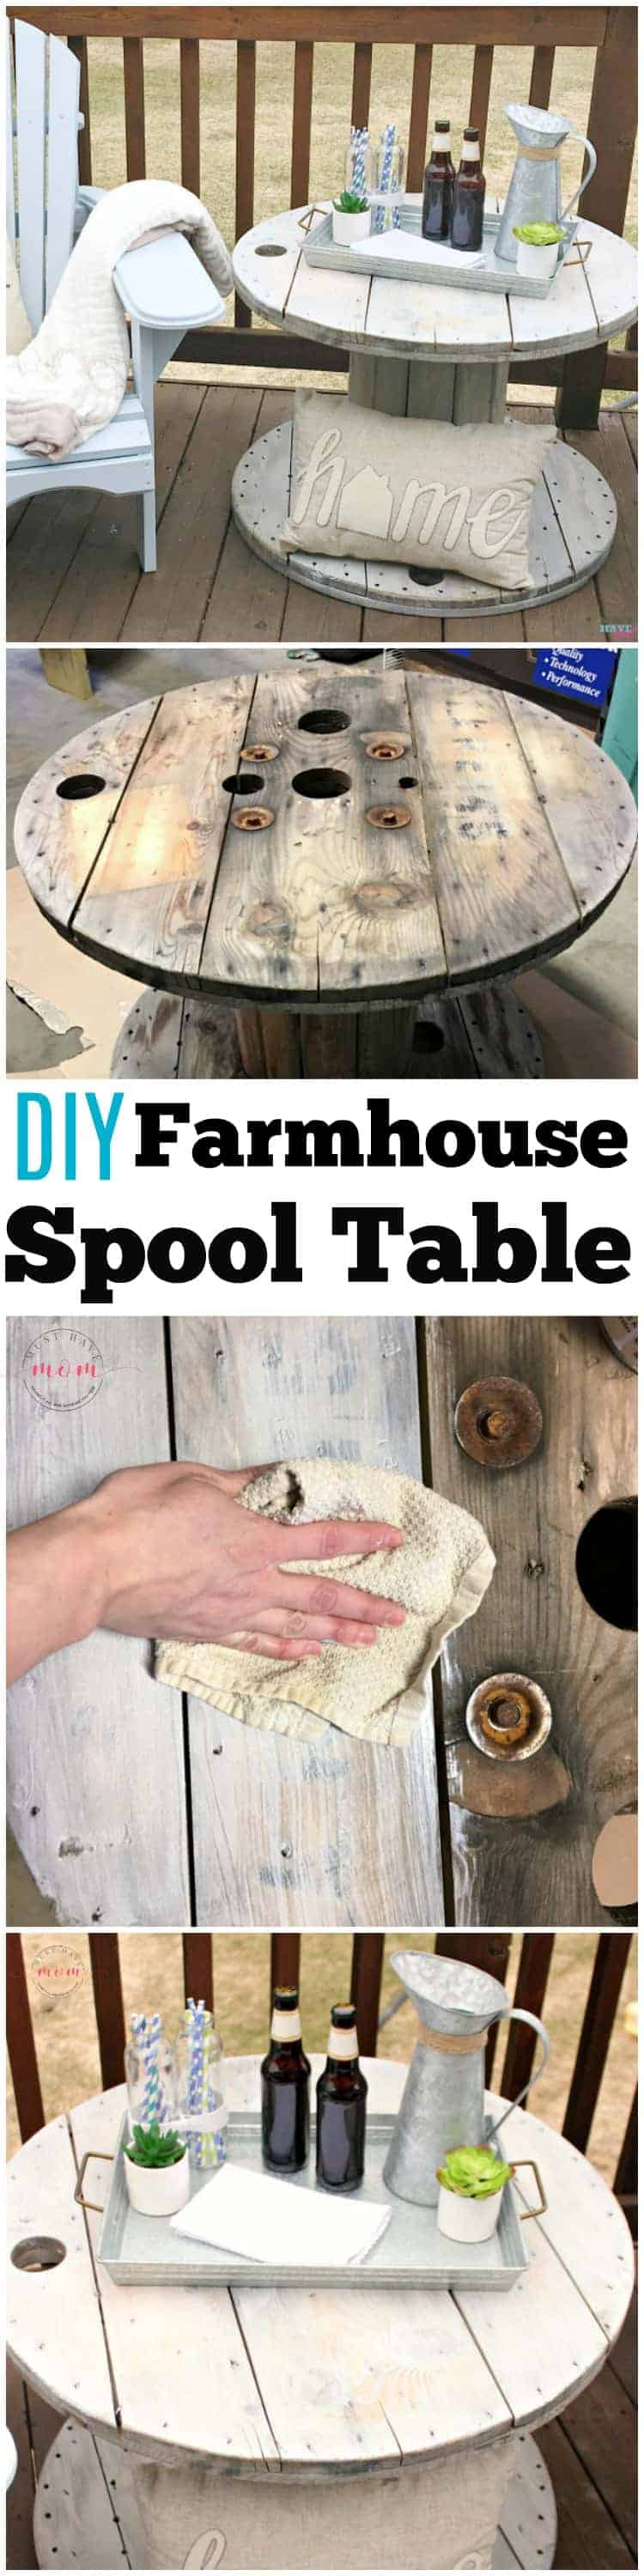 Four image collage showing DIY farmhouse spool table getting redone and then staged on a porch with chairs and drinks